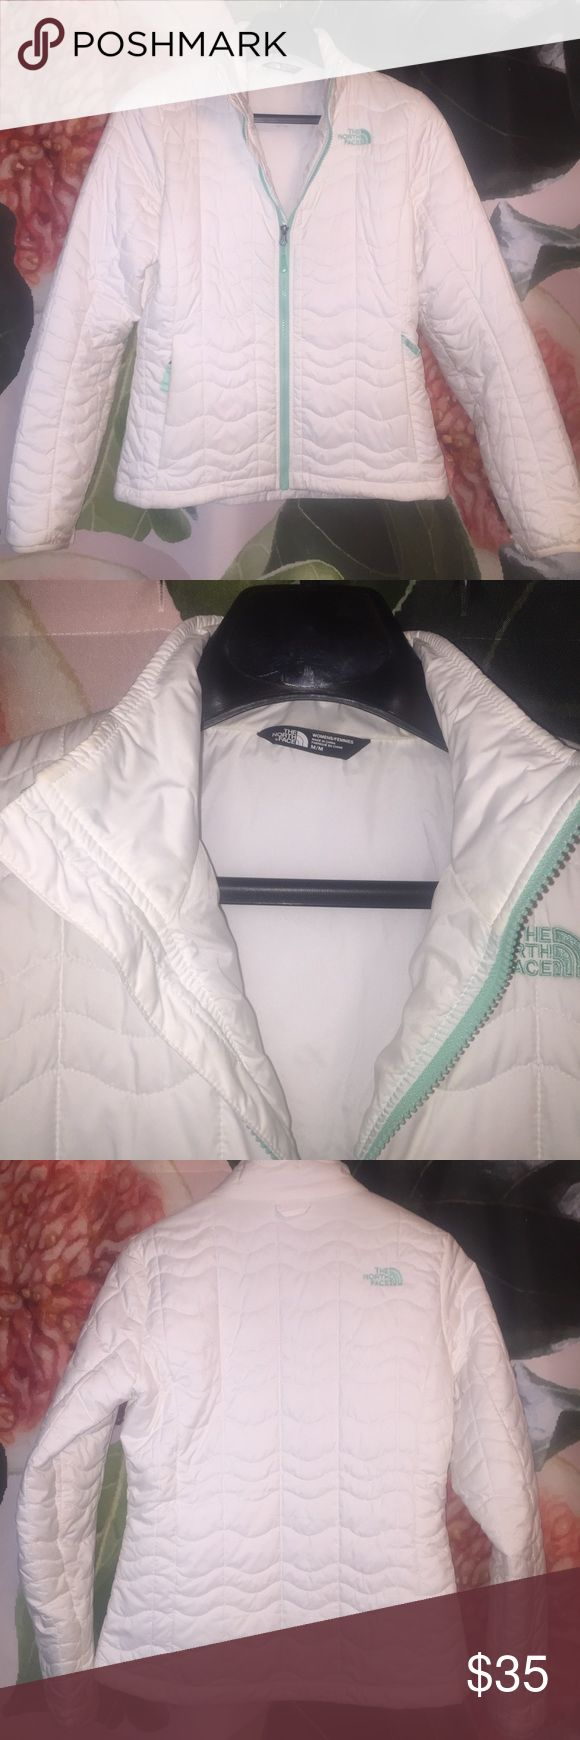 The North Face Thermoball Jacket White and mint quilted lightweight jacket. Great condition with only slight discolorations on cuffs and bear pockets. See pics for all details. NO makeup on the collar 😋 North Face Jackets & Coats Puffers